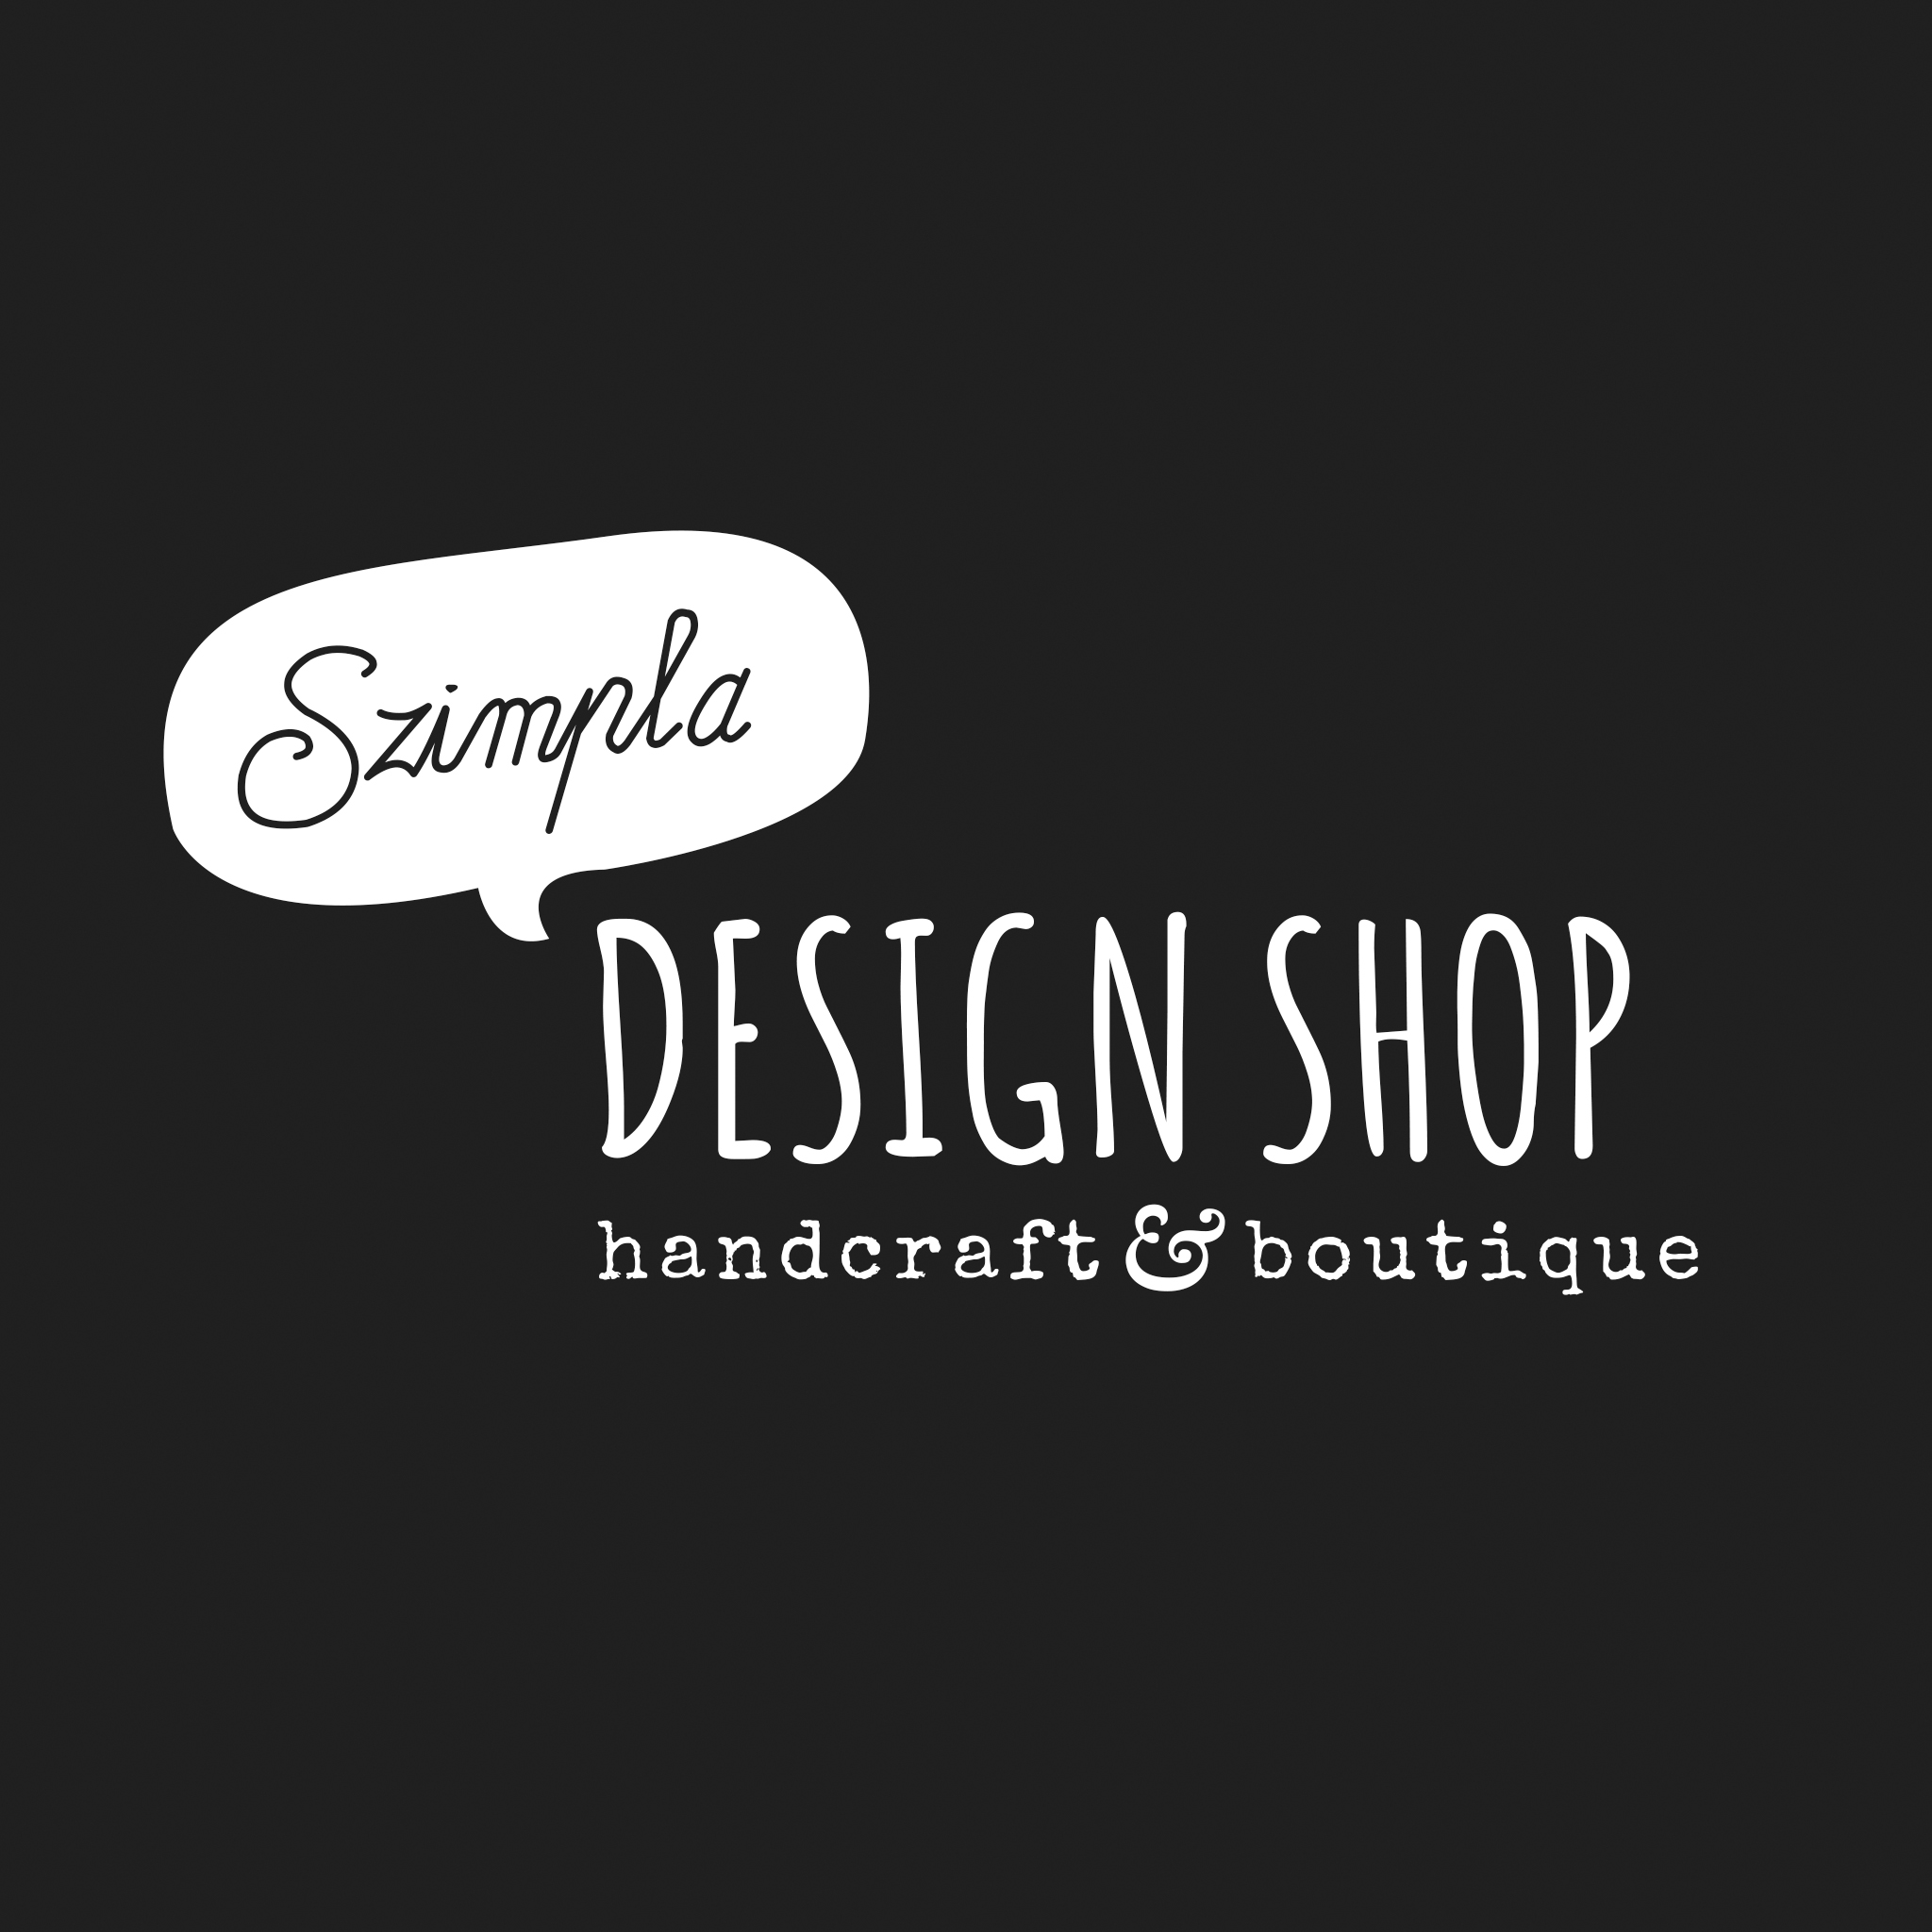 Szimpla Design Shop